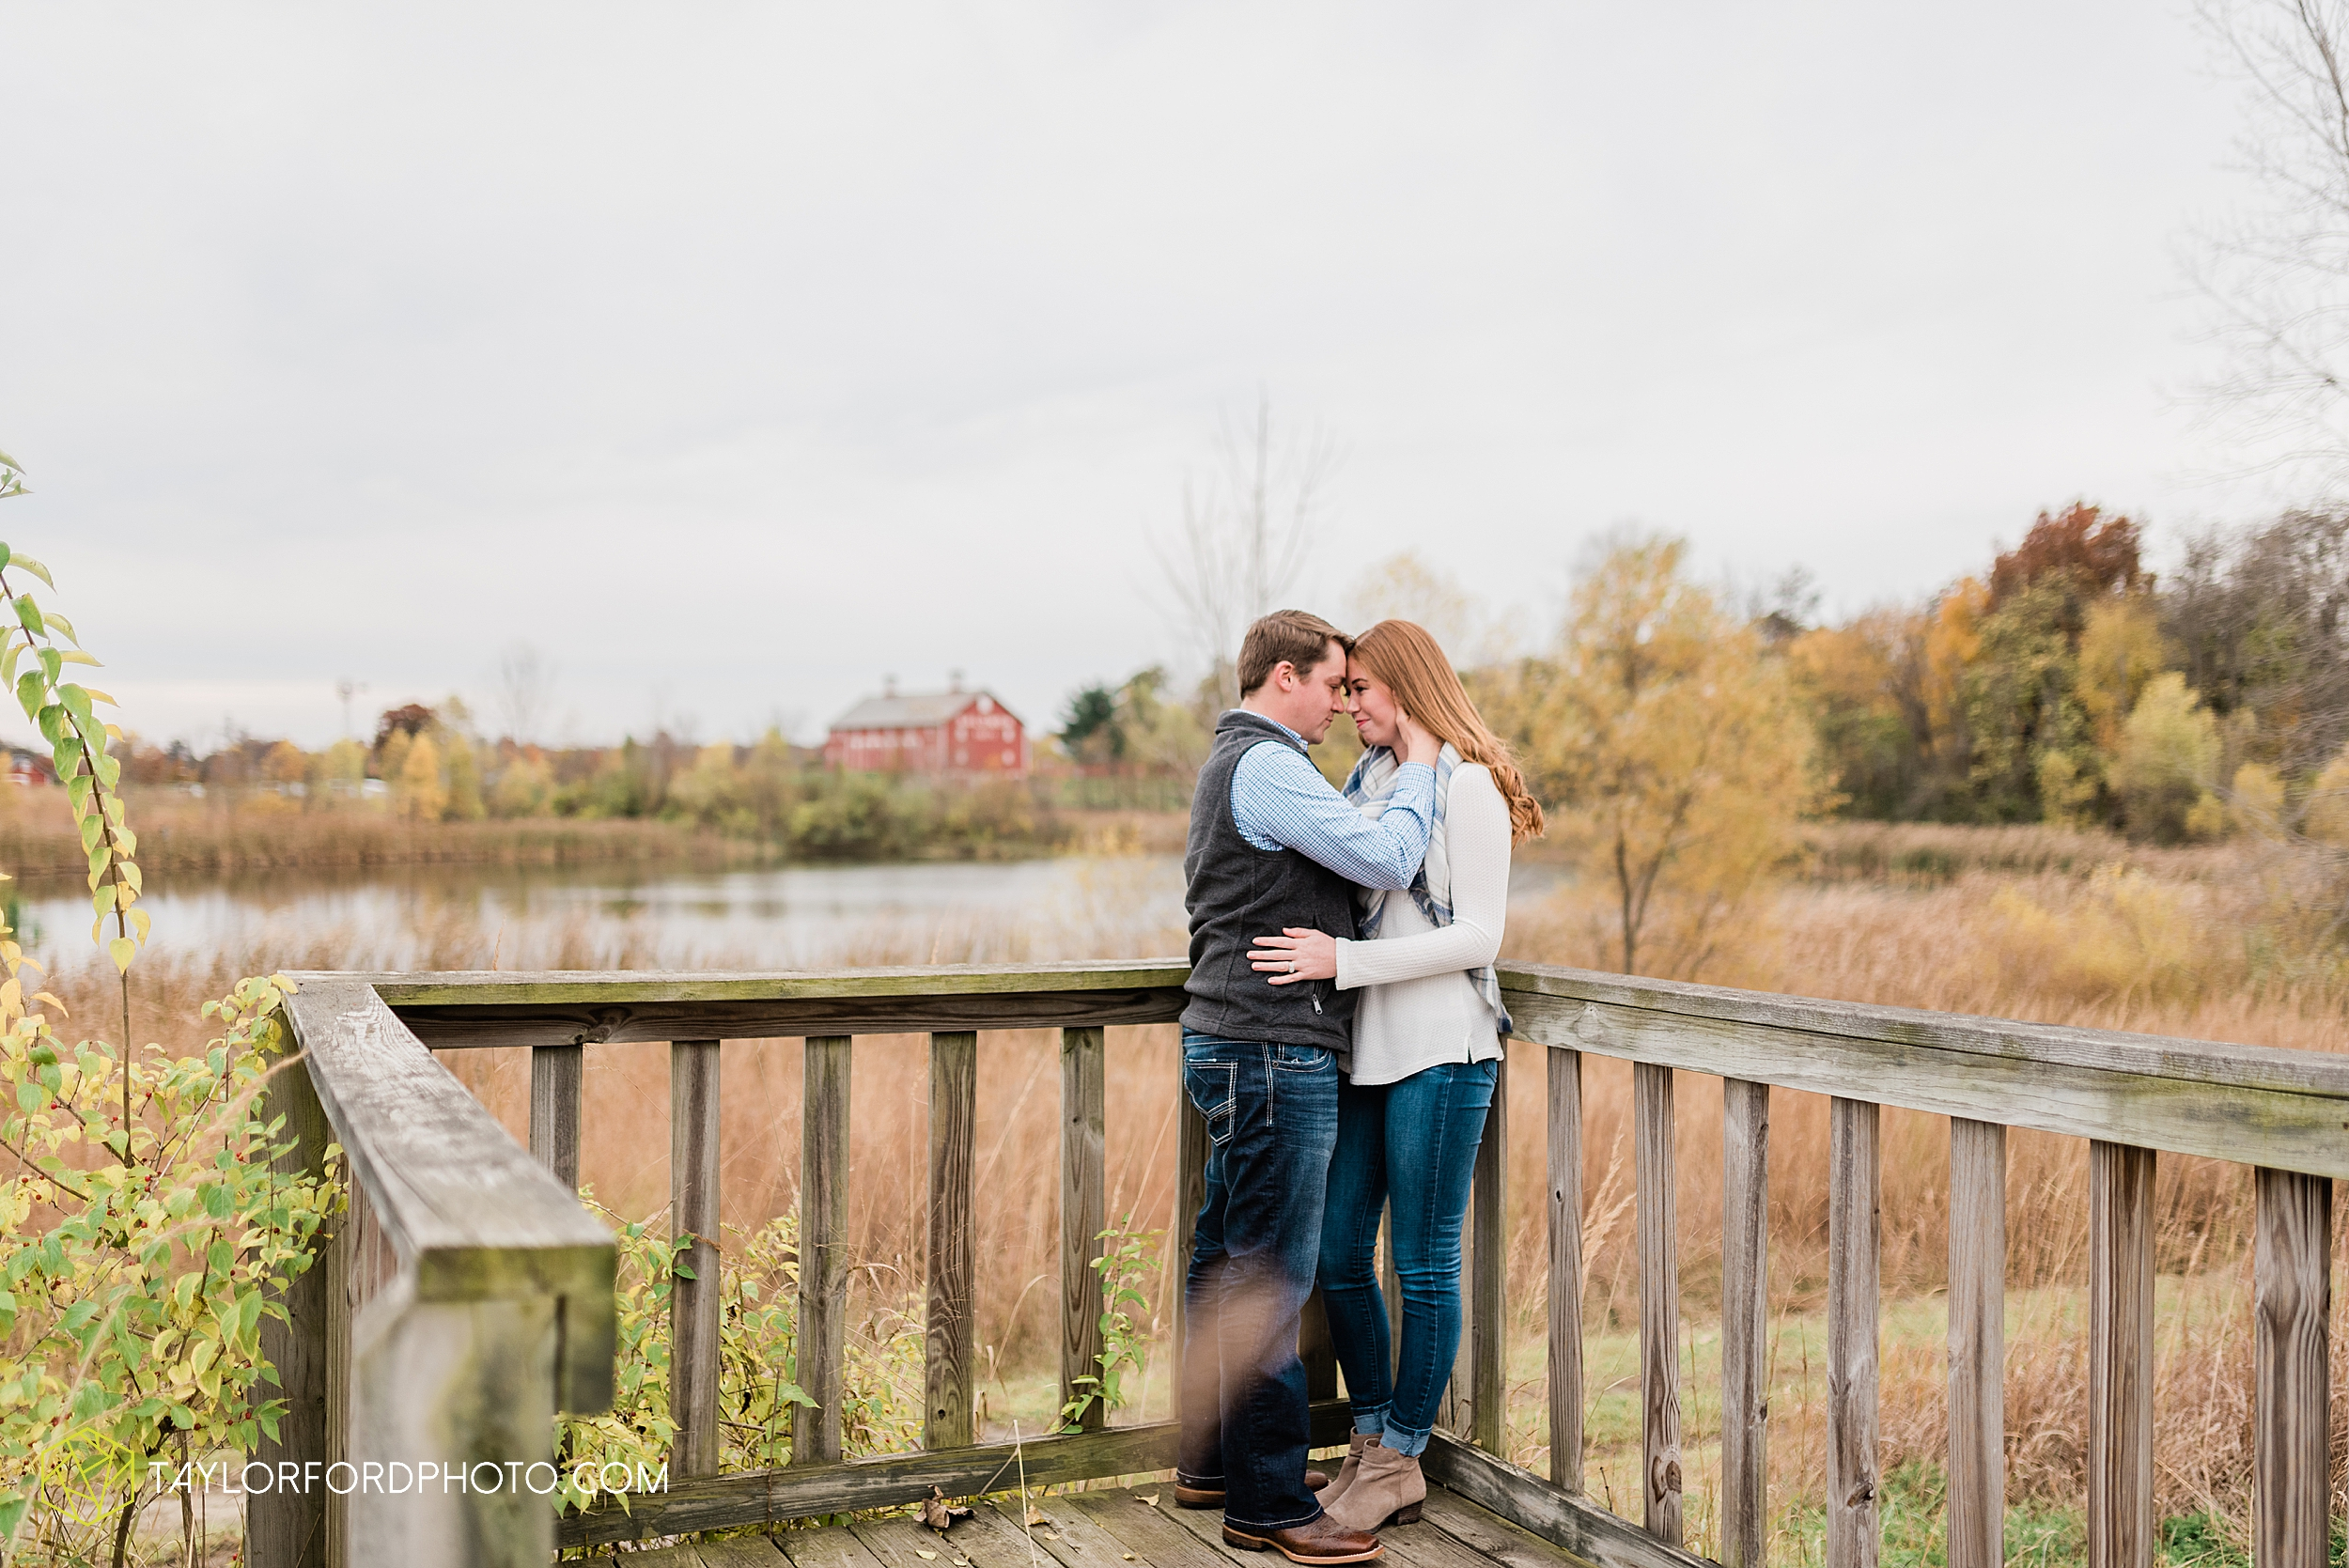 becca-connor-bonnell-fort-wayne-indiana-couples-mini-session-salomon-farm-fall-october-photographer-taylor-ford-photography_1635.jpg